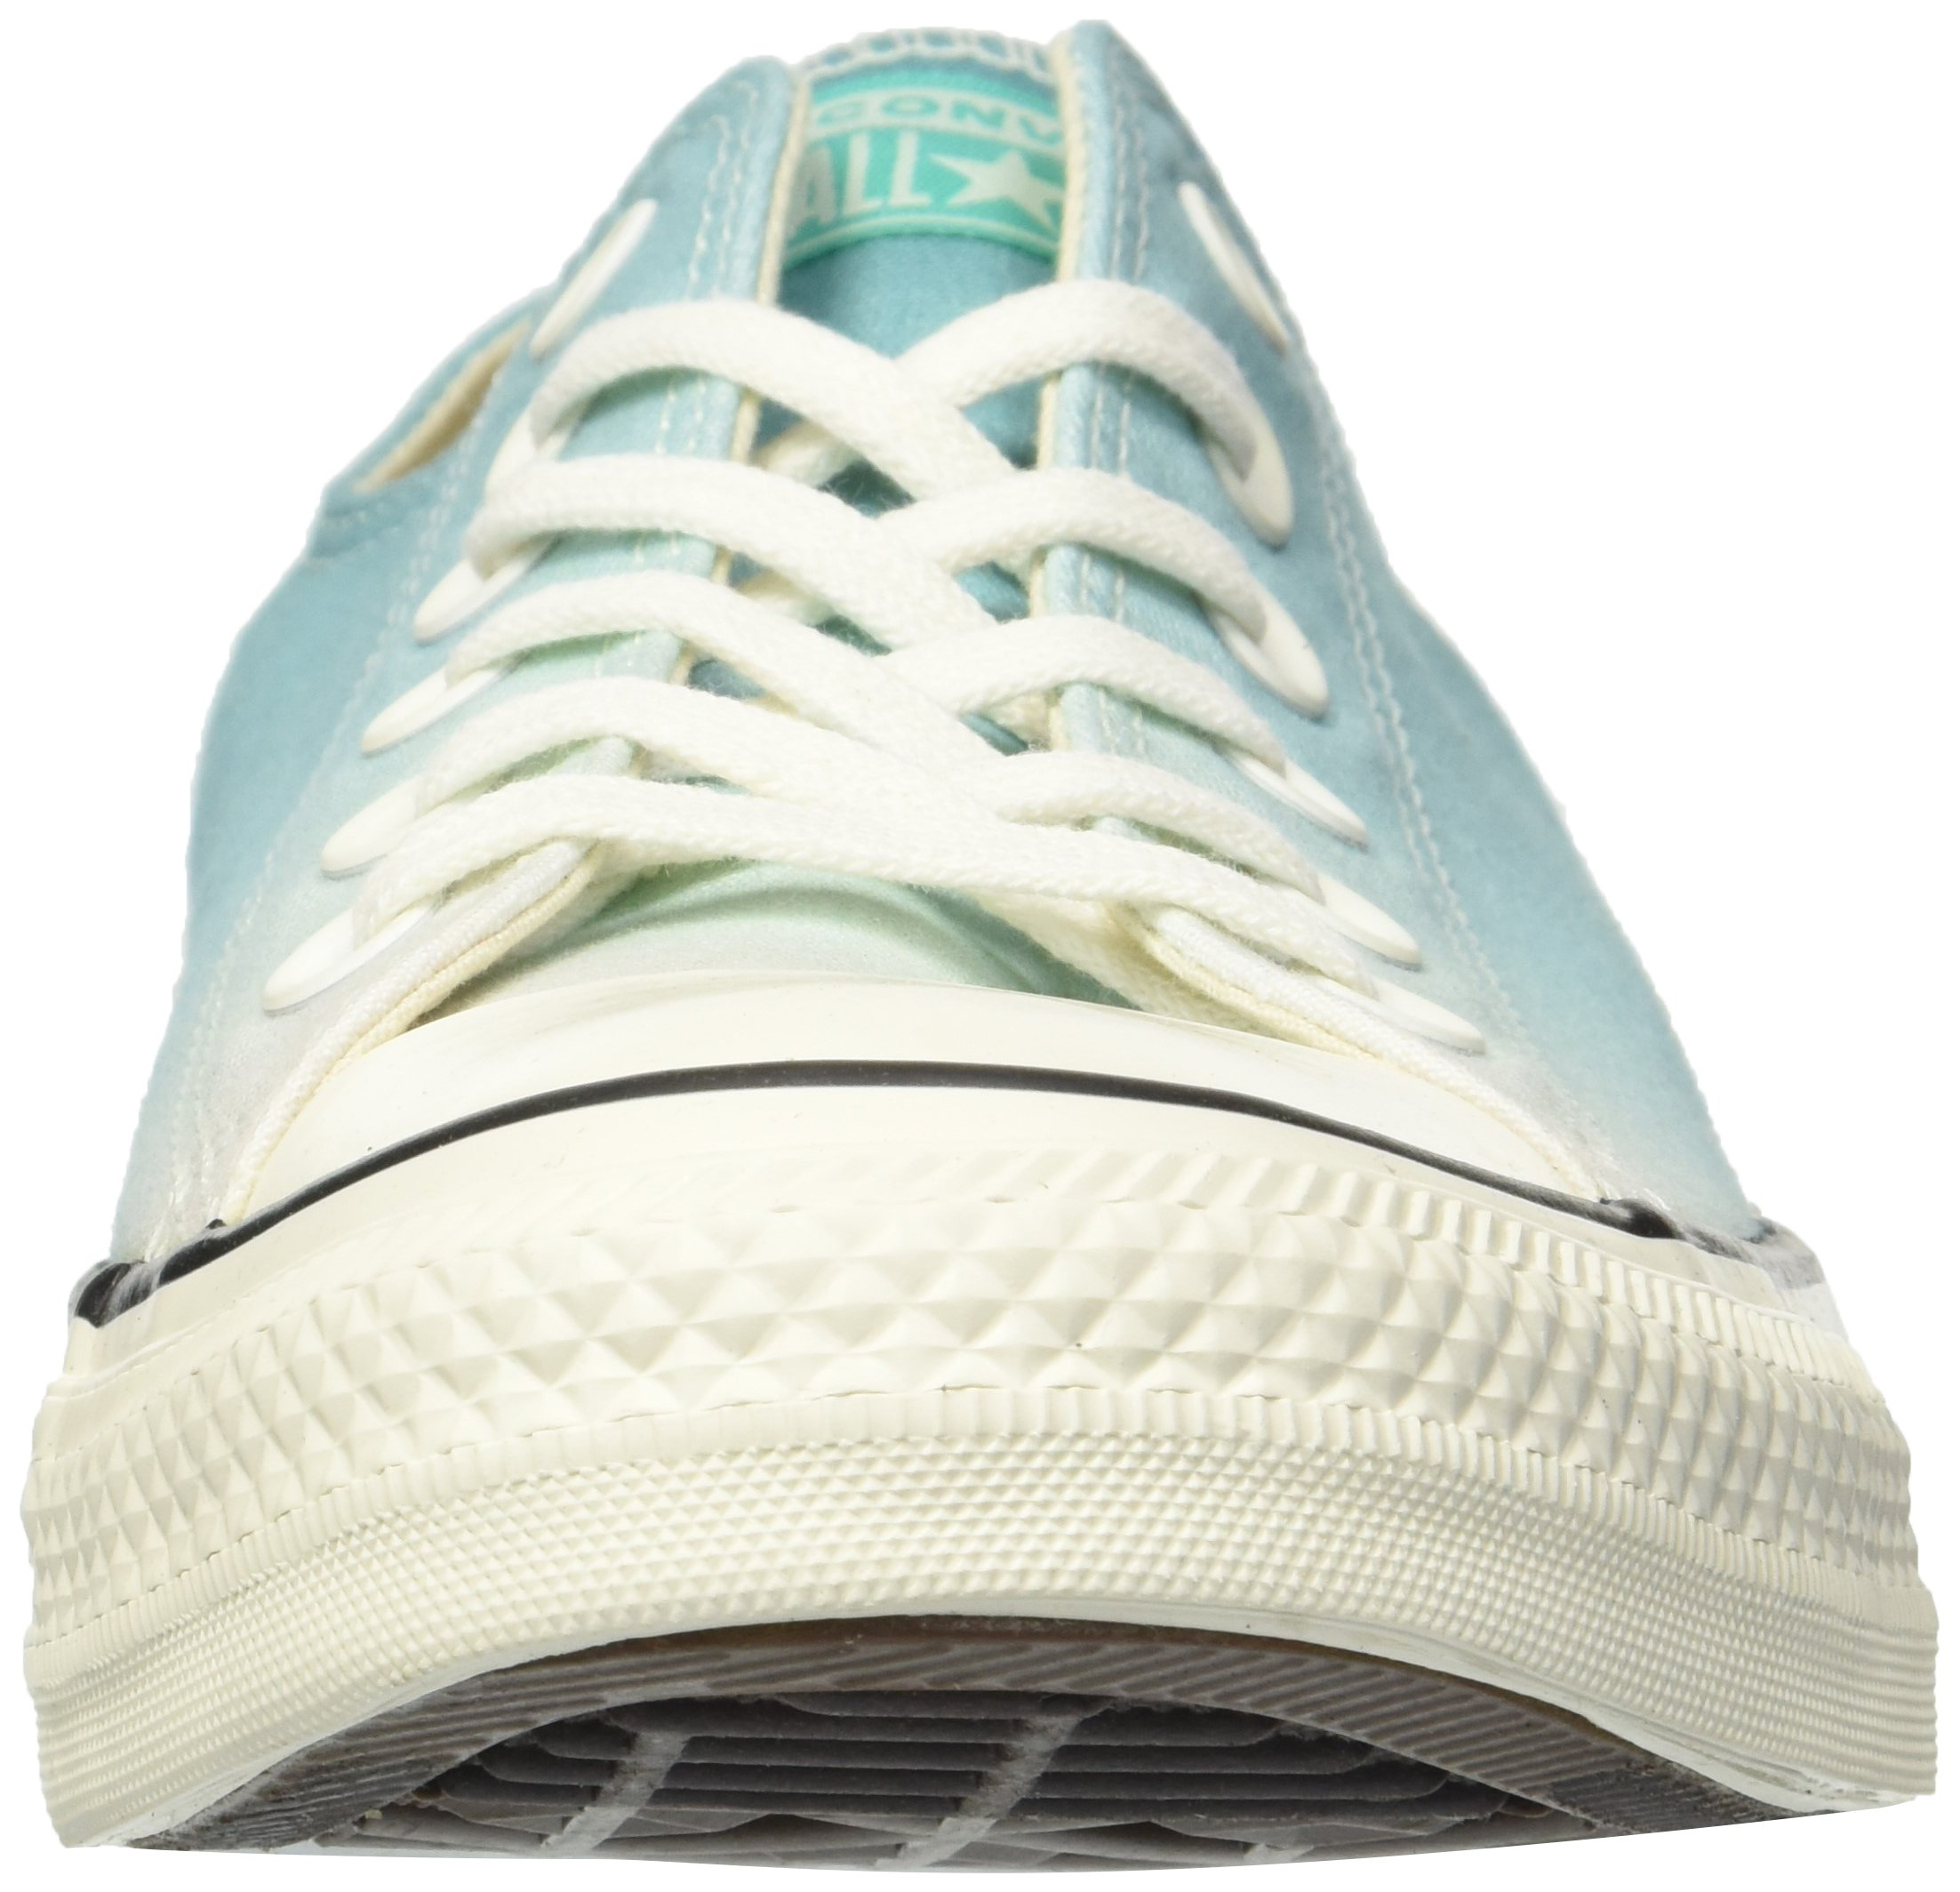 Converse Women's Chuck Taylor All Star Ombre Low TOP Sneaker, Pure Teal egret, 7.5 M US by Converse (Image #4)